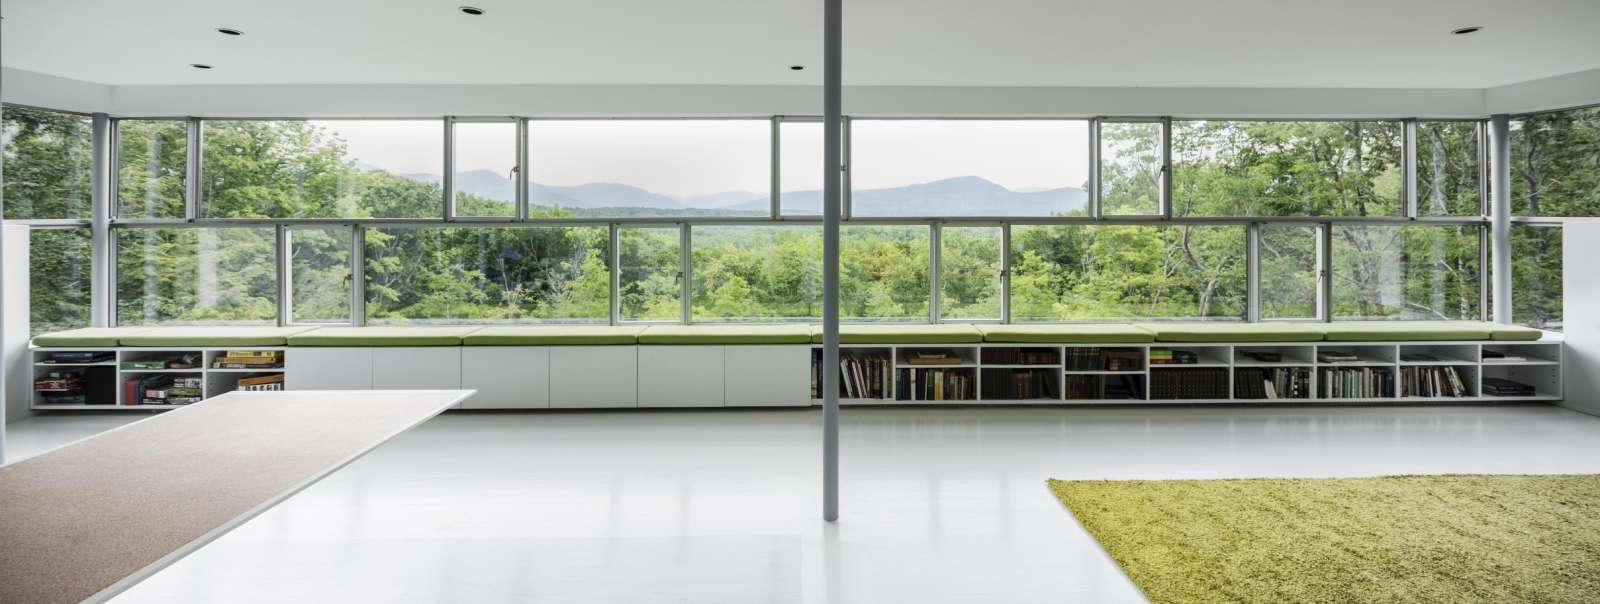 Superb 08 Tower House By Gluck+ Idea